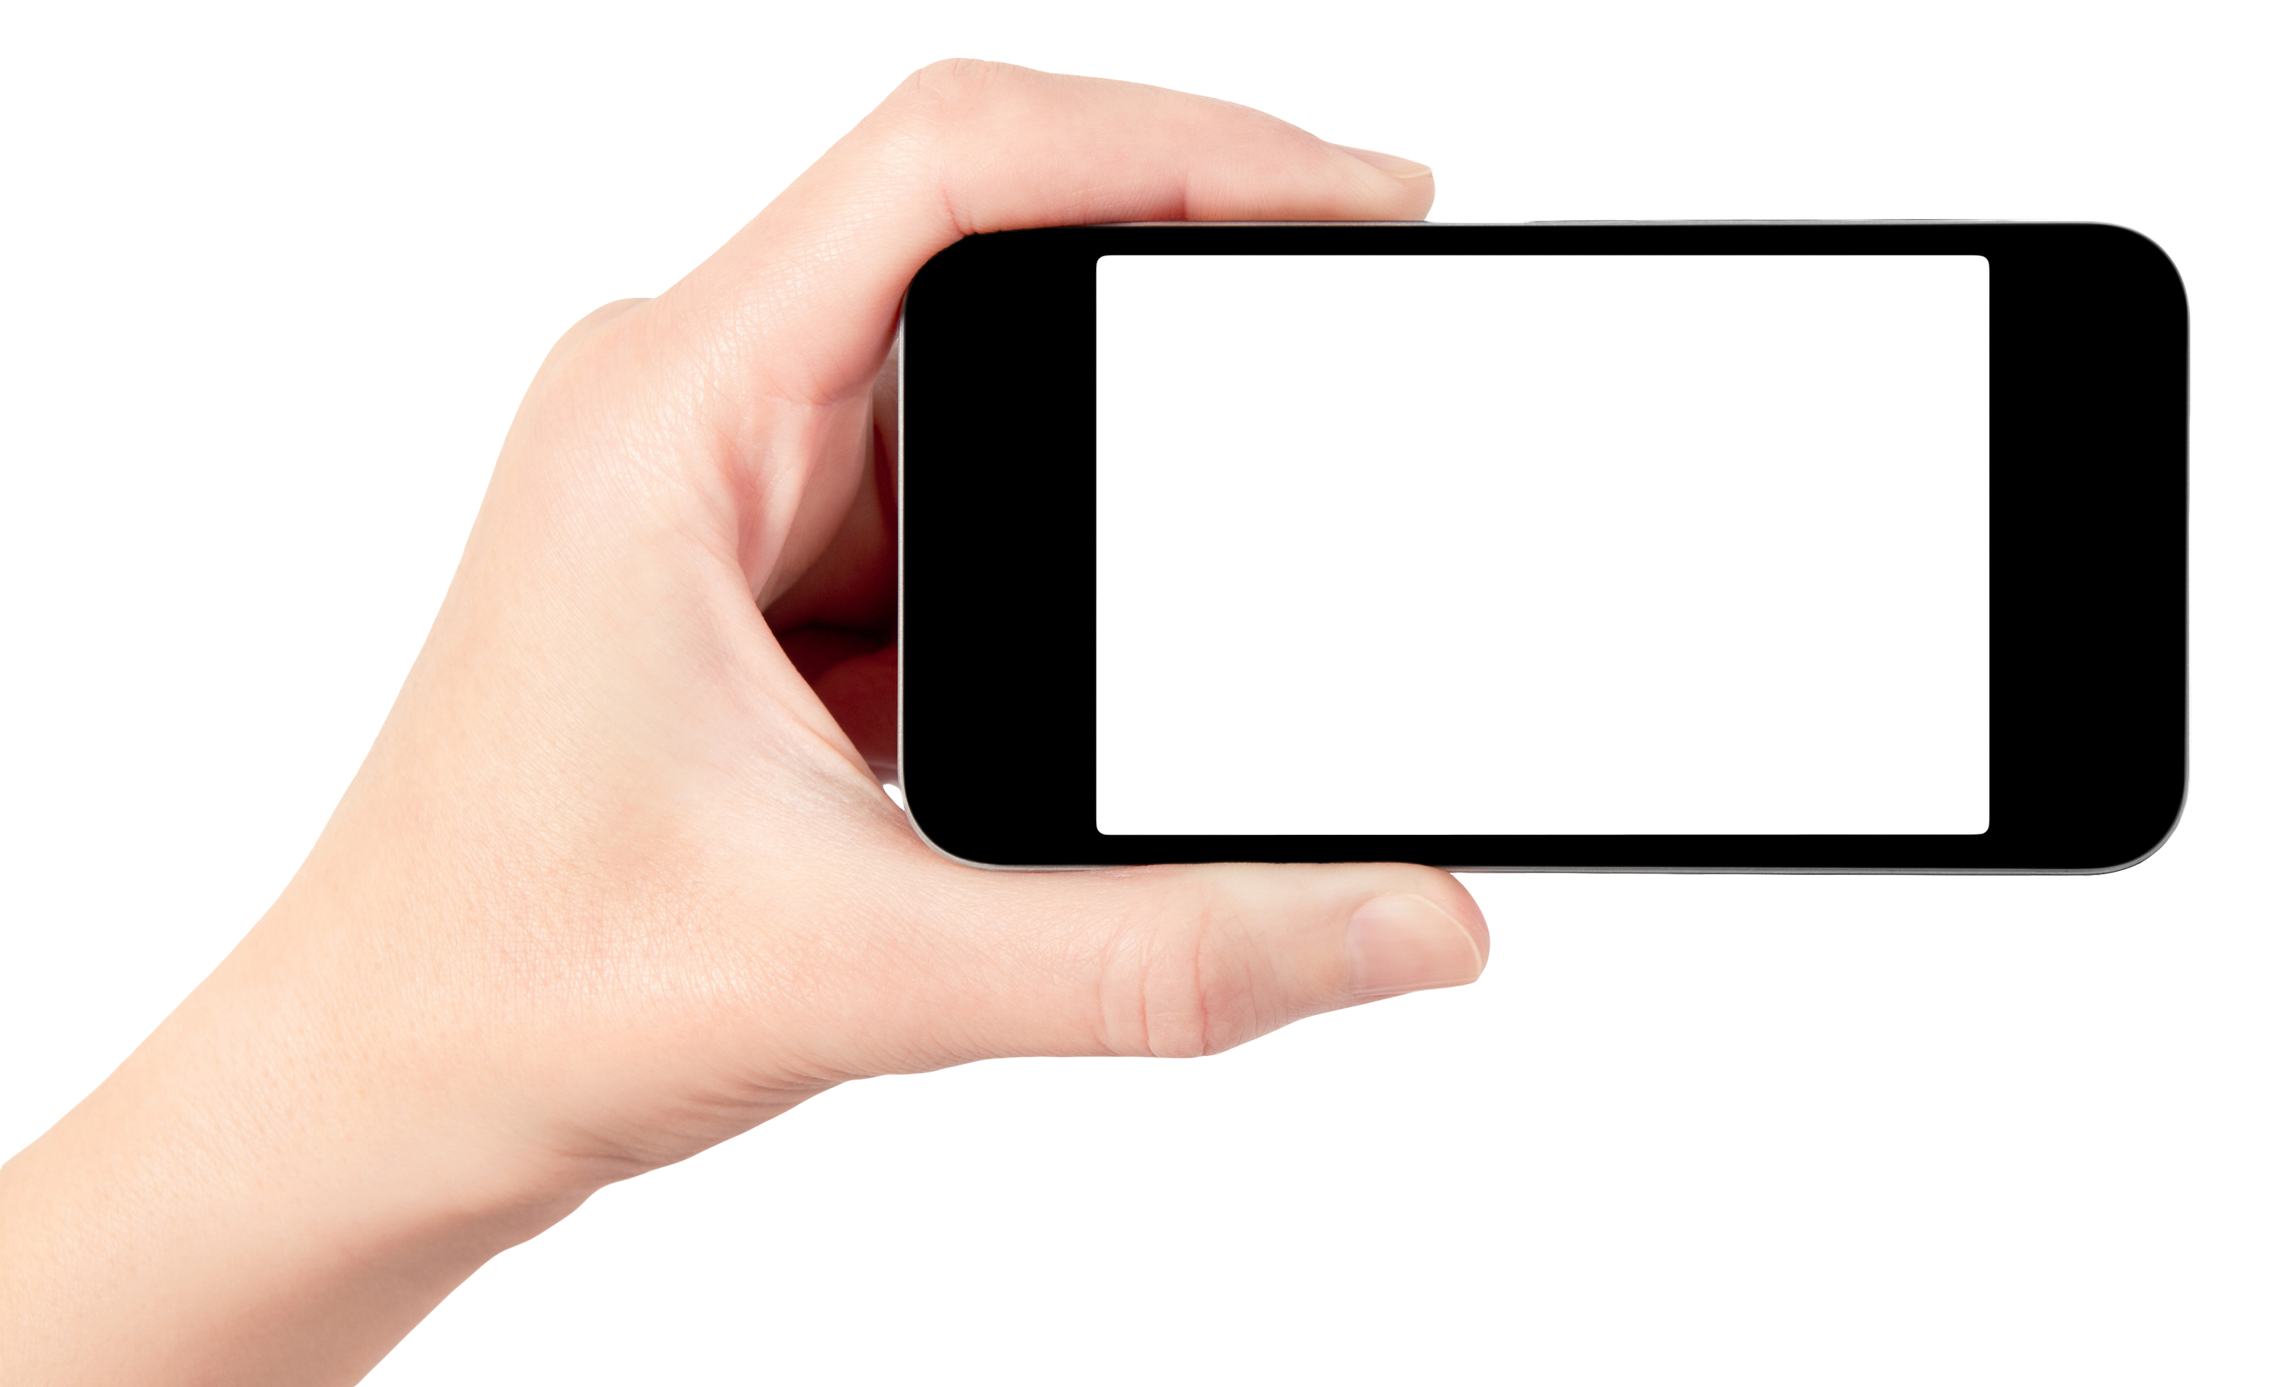 Hand clipart computer. Phone in png image